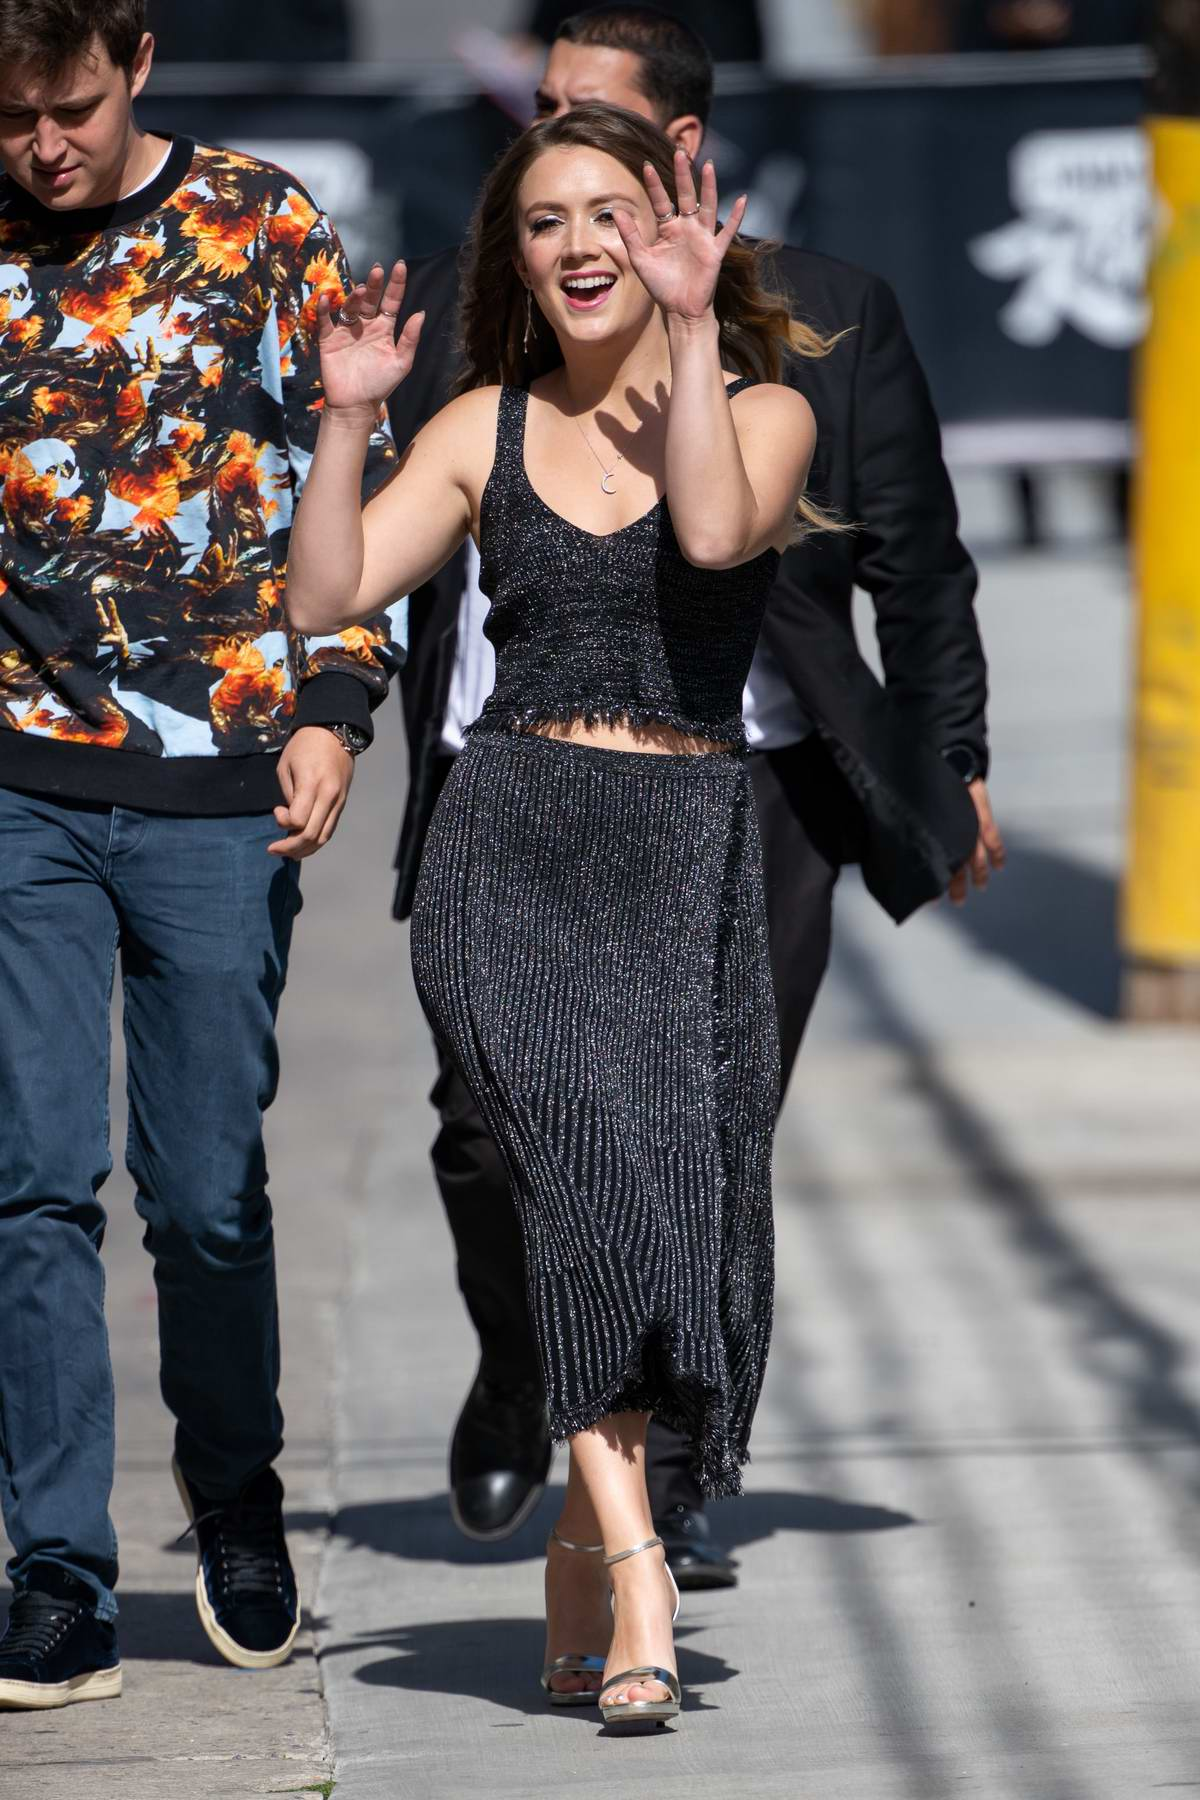 Billie Lourd is all smiles as she arrives for an appearance on Jimmy Kimmel Live in Hollywood, California